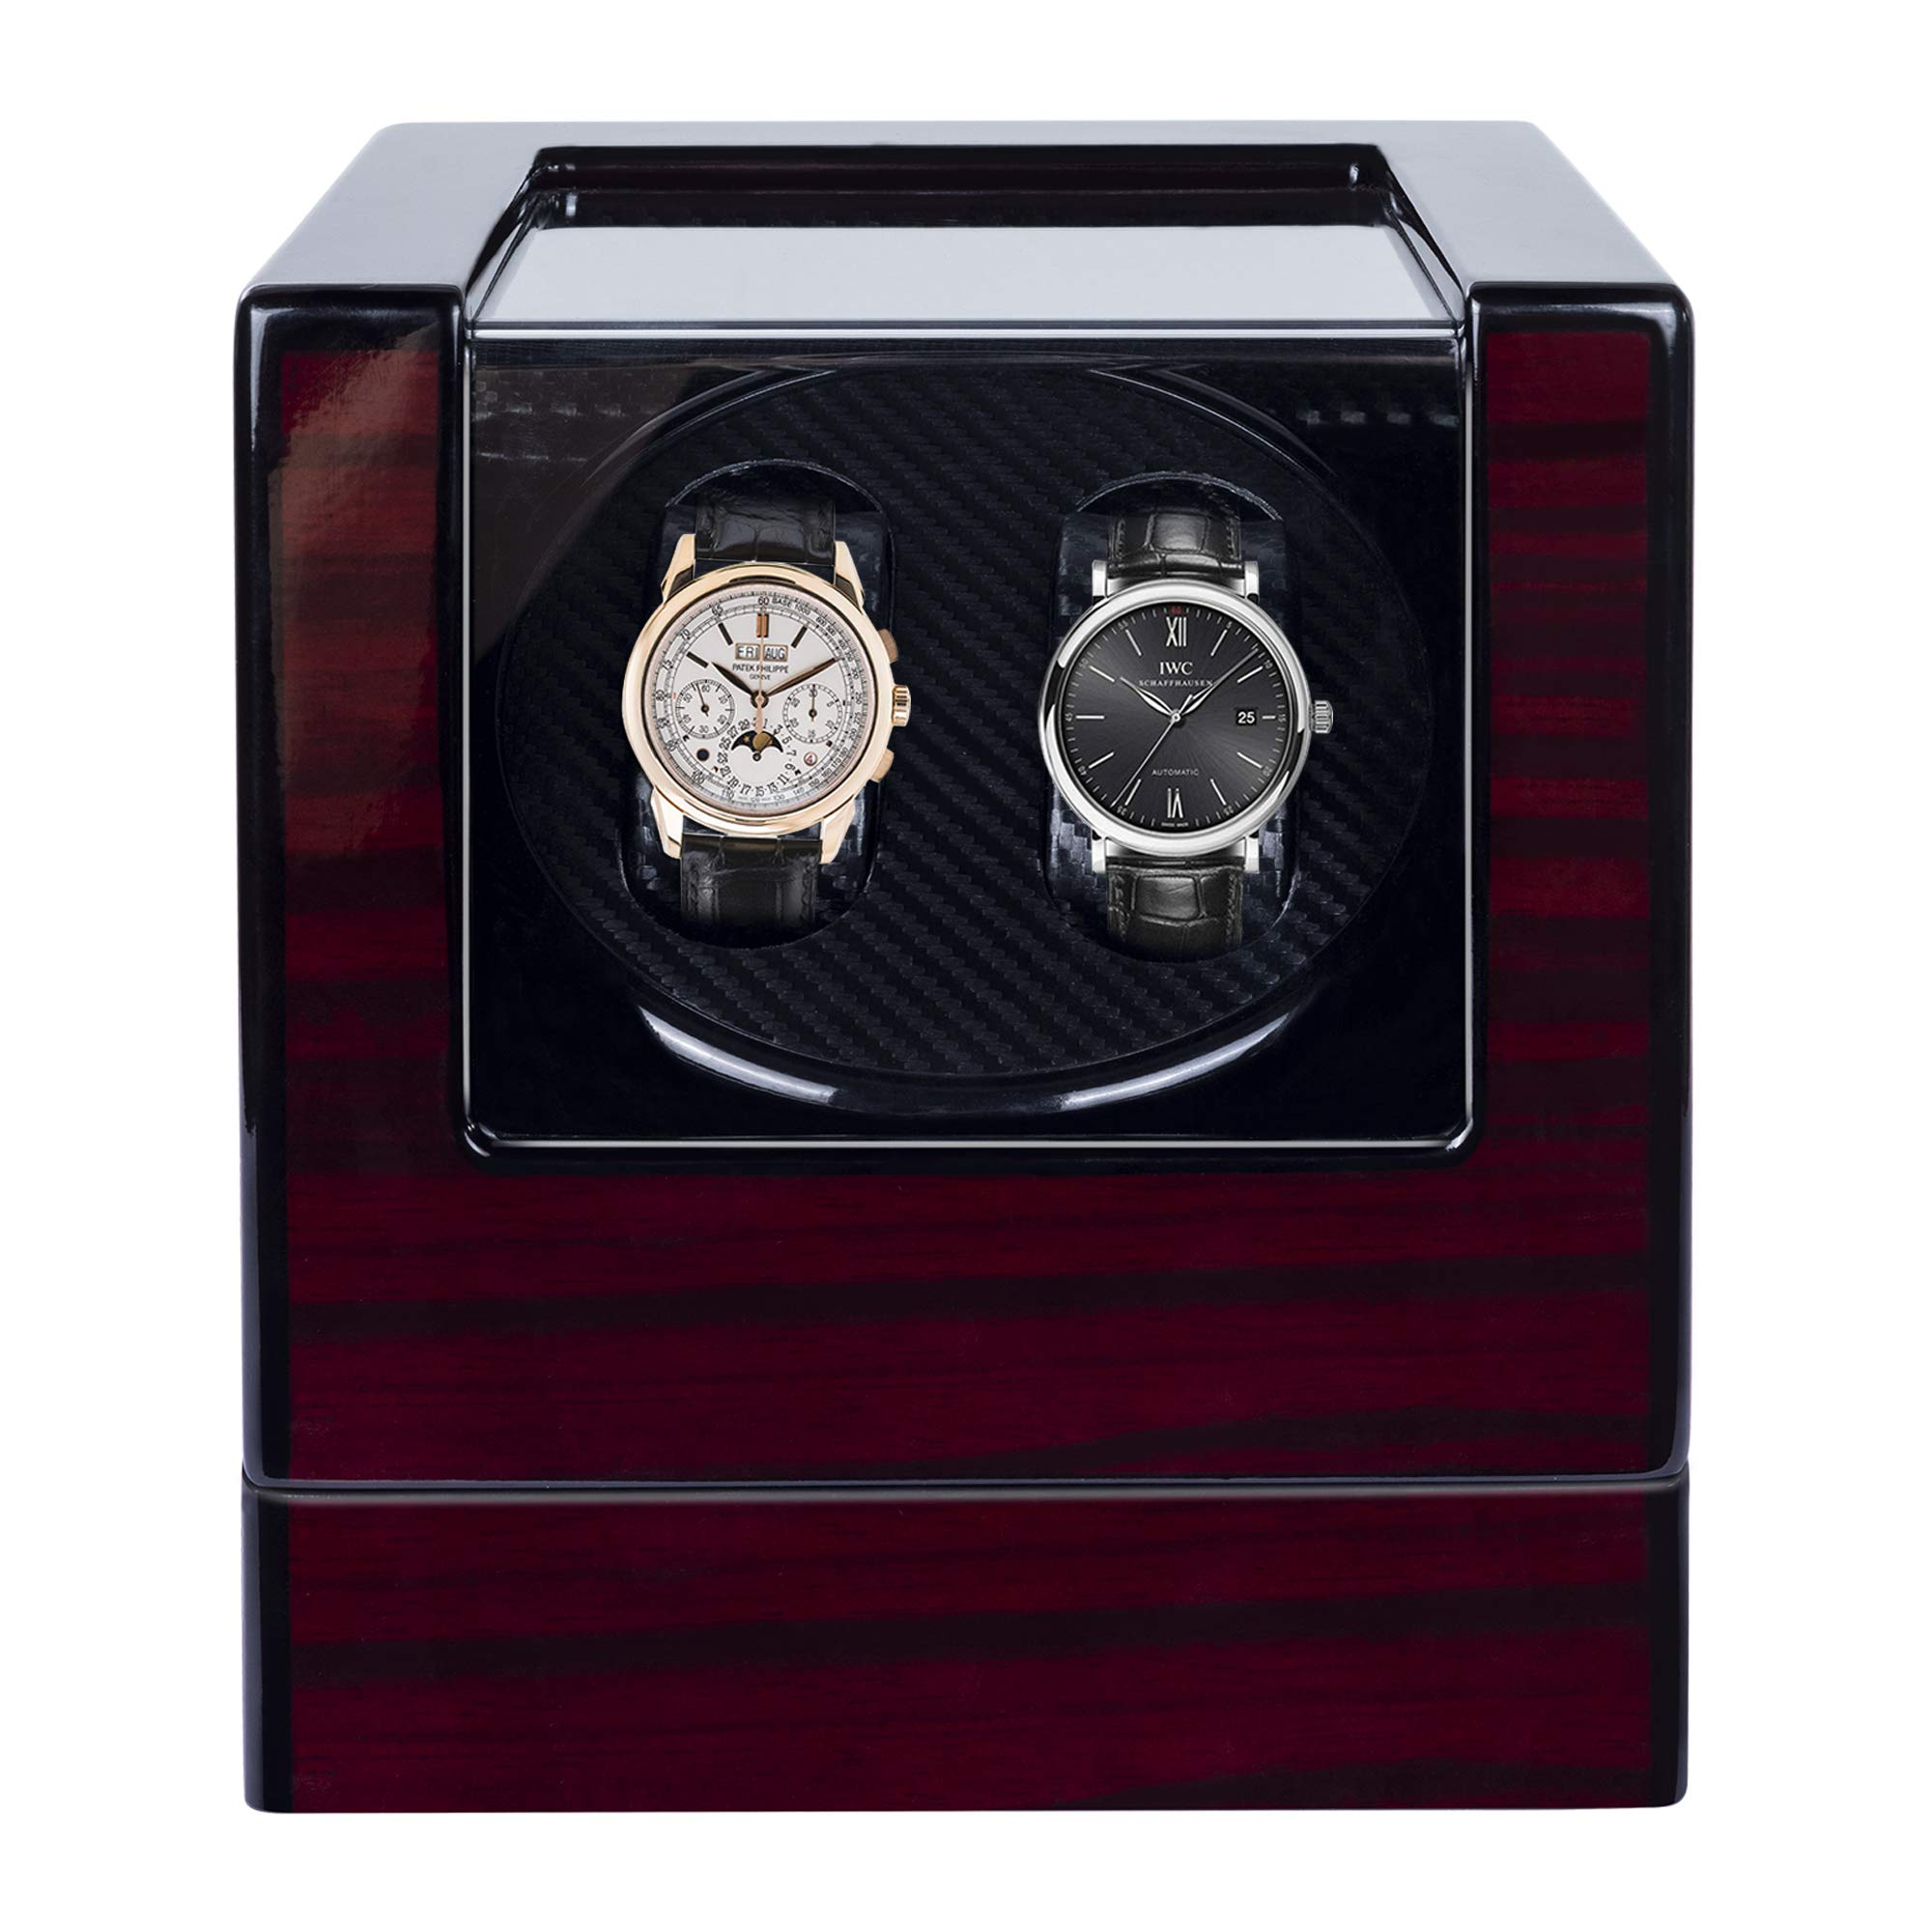 Kalawen Automatic Double Watch Winder Box for All Automatic Mechanical Watches with Quiet Motor AC Adapter or Battery Powered for 2 Men's or Ladies', Black by Kalawen